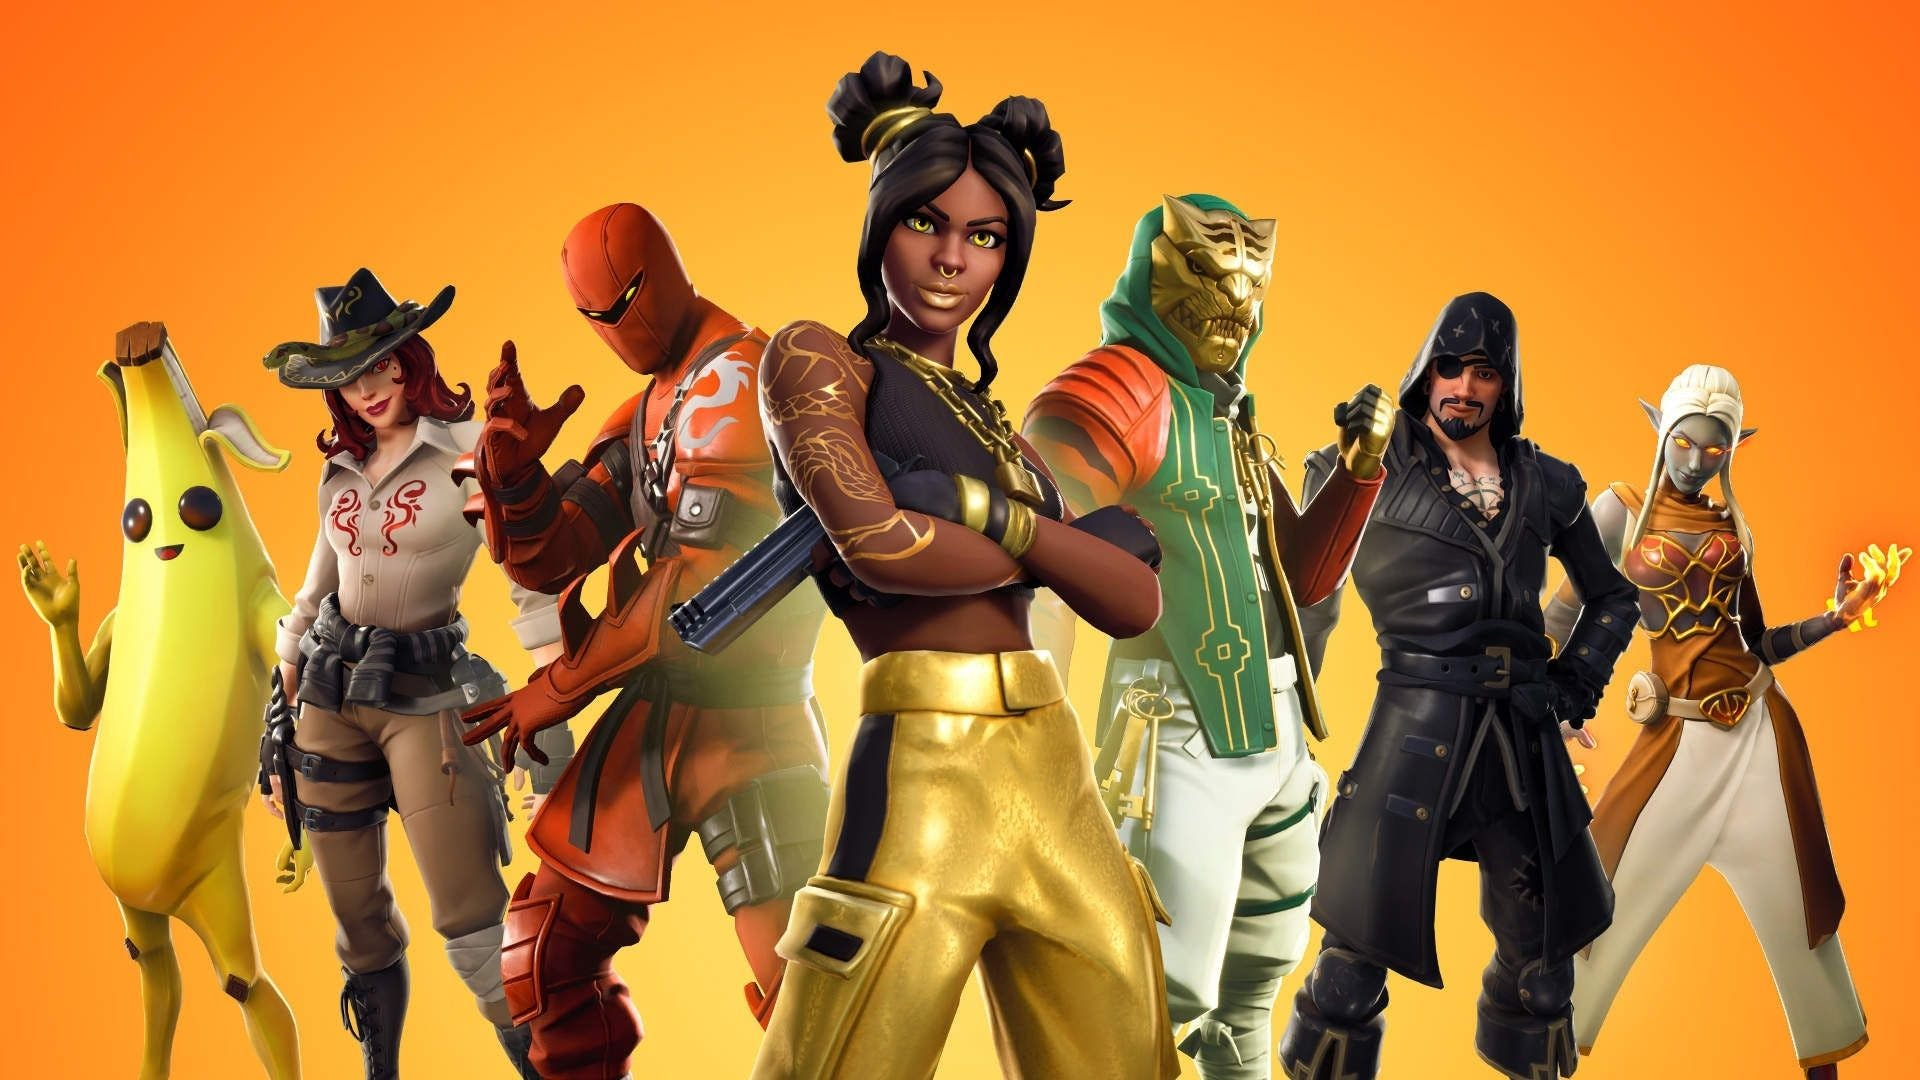 Characters from the game Fortnite